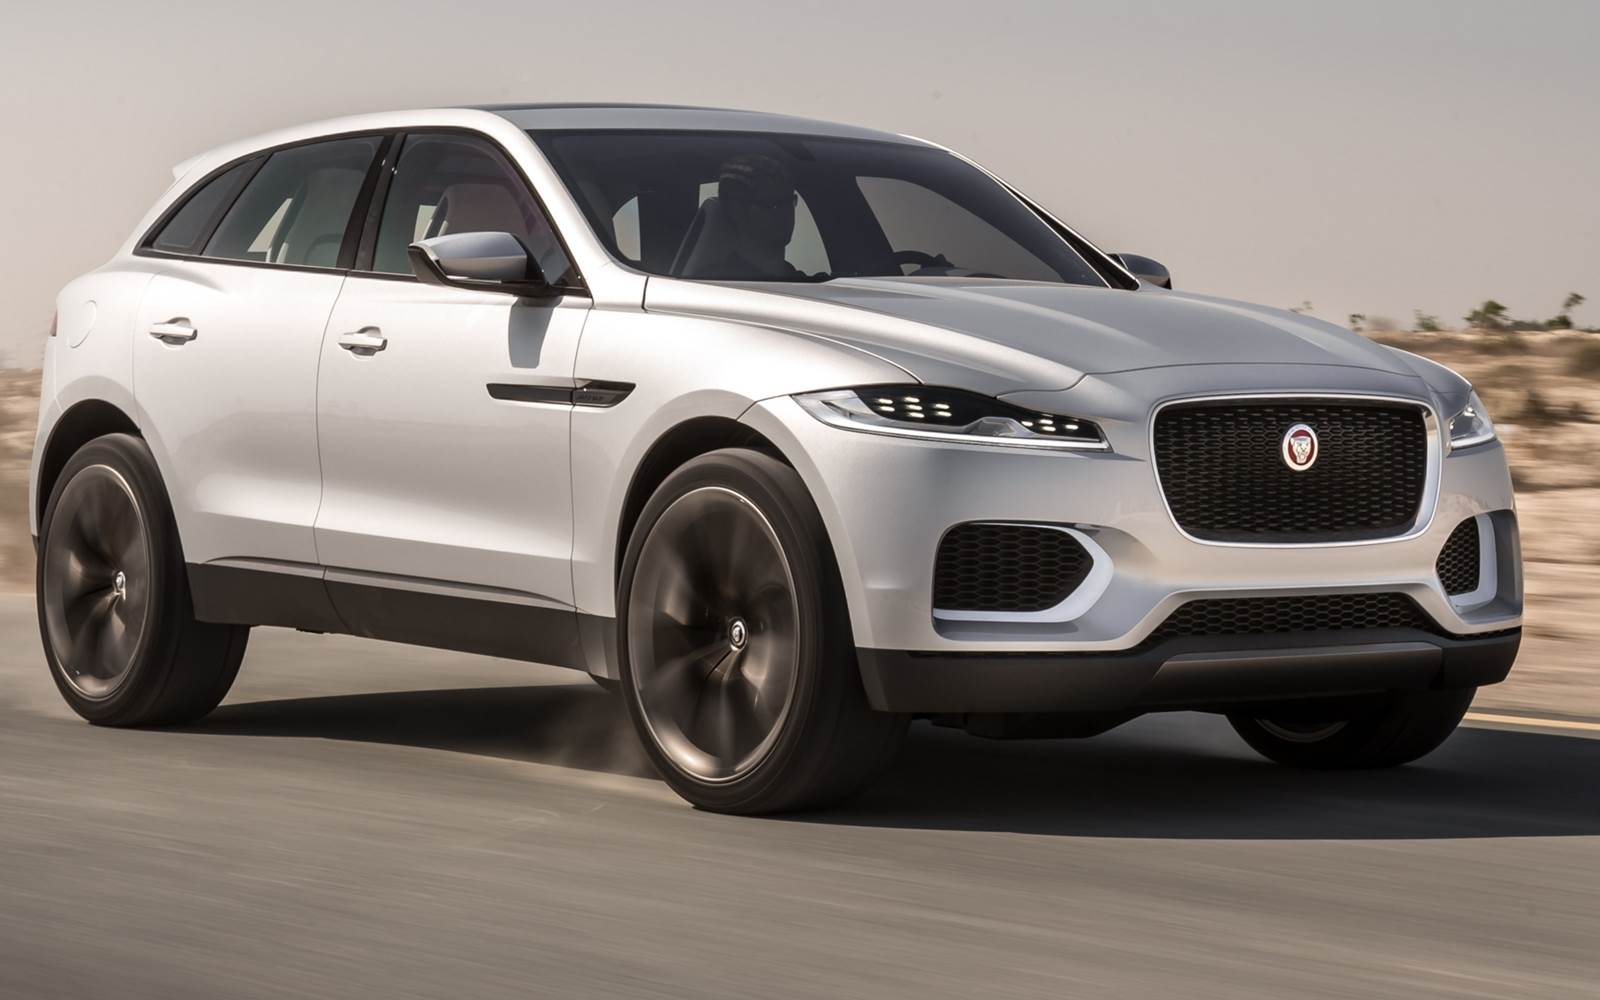 jaguar f pace suv price 2017. Black Bedroom Furniture Sets. Home Design Ideas